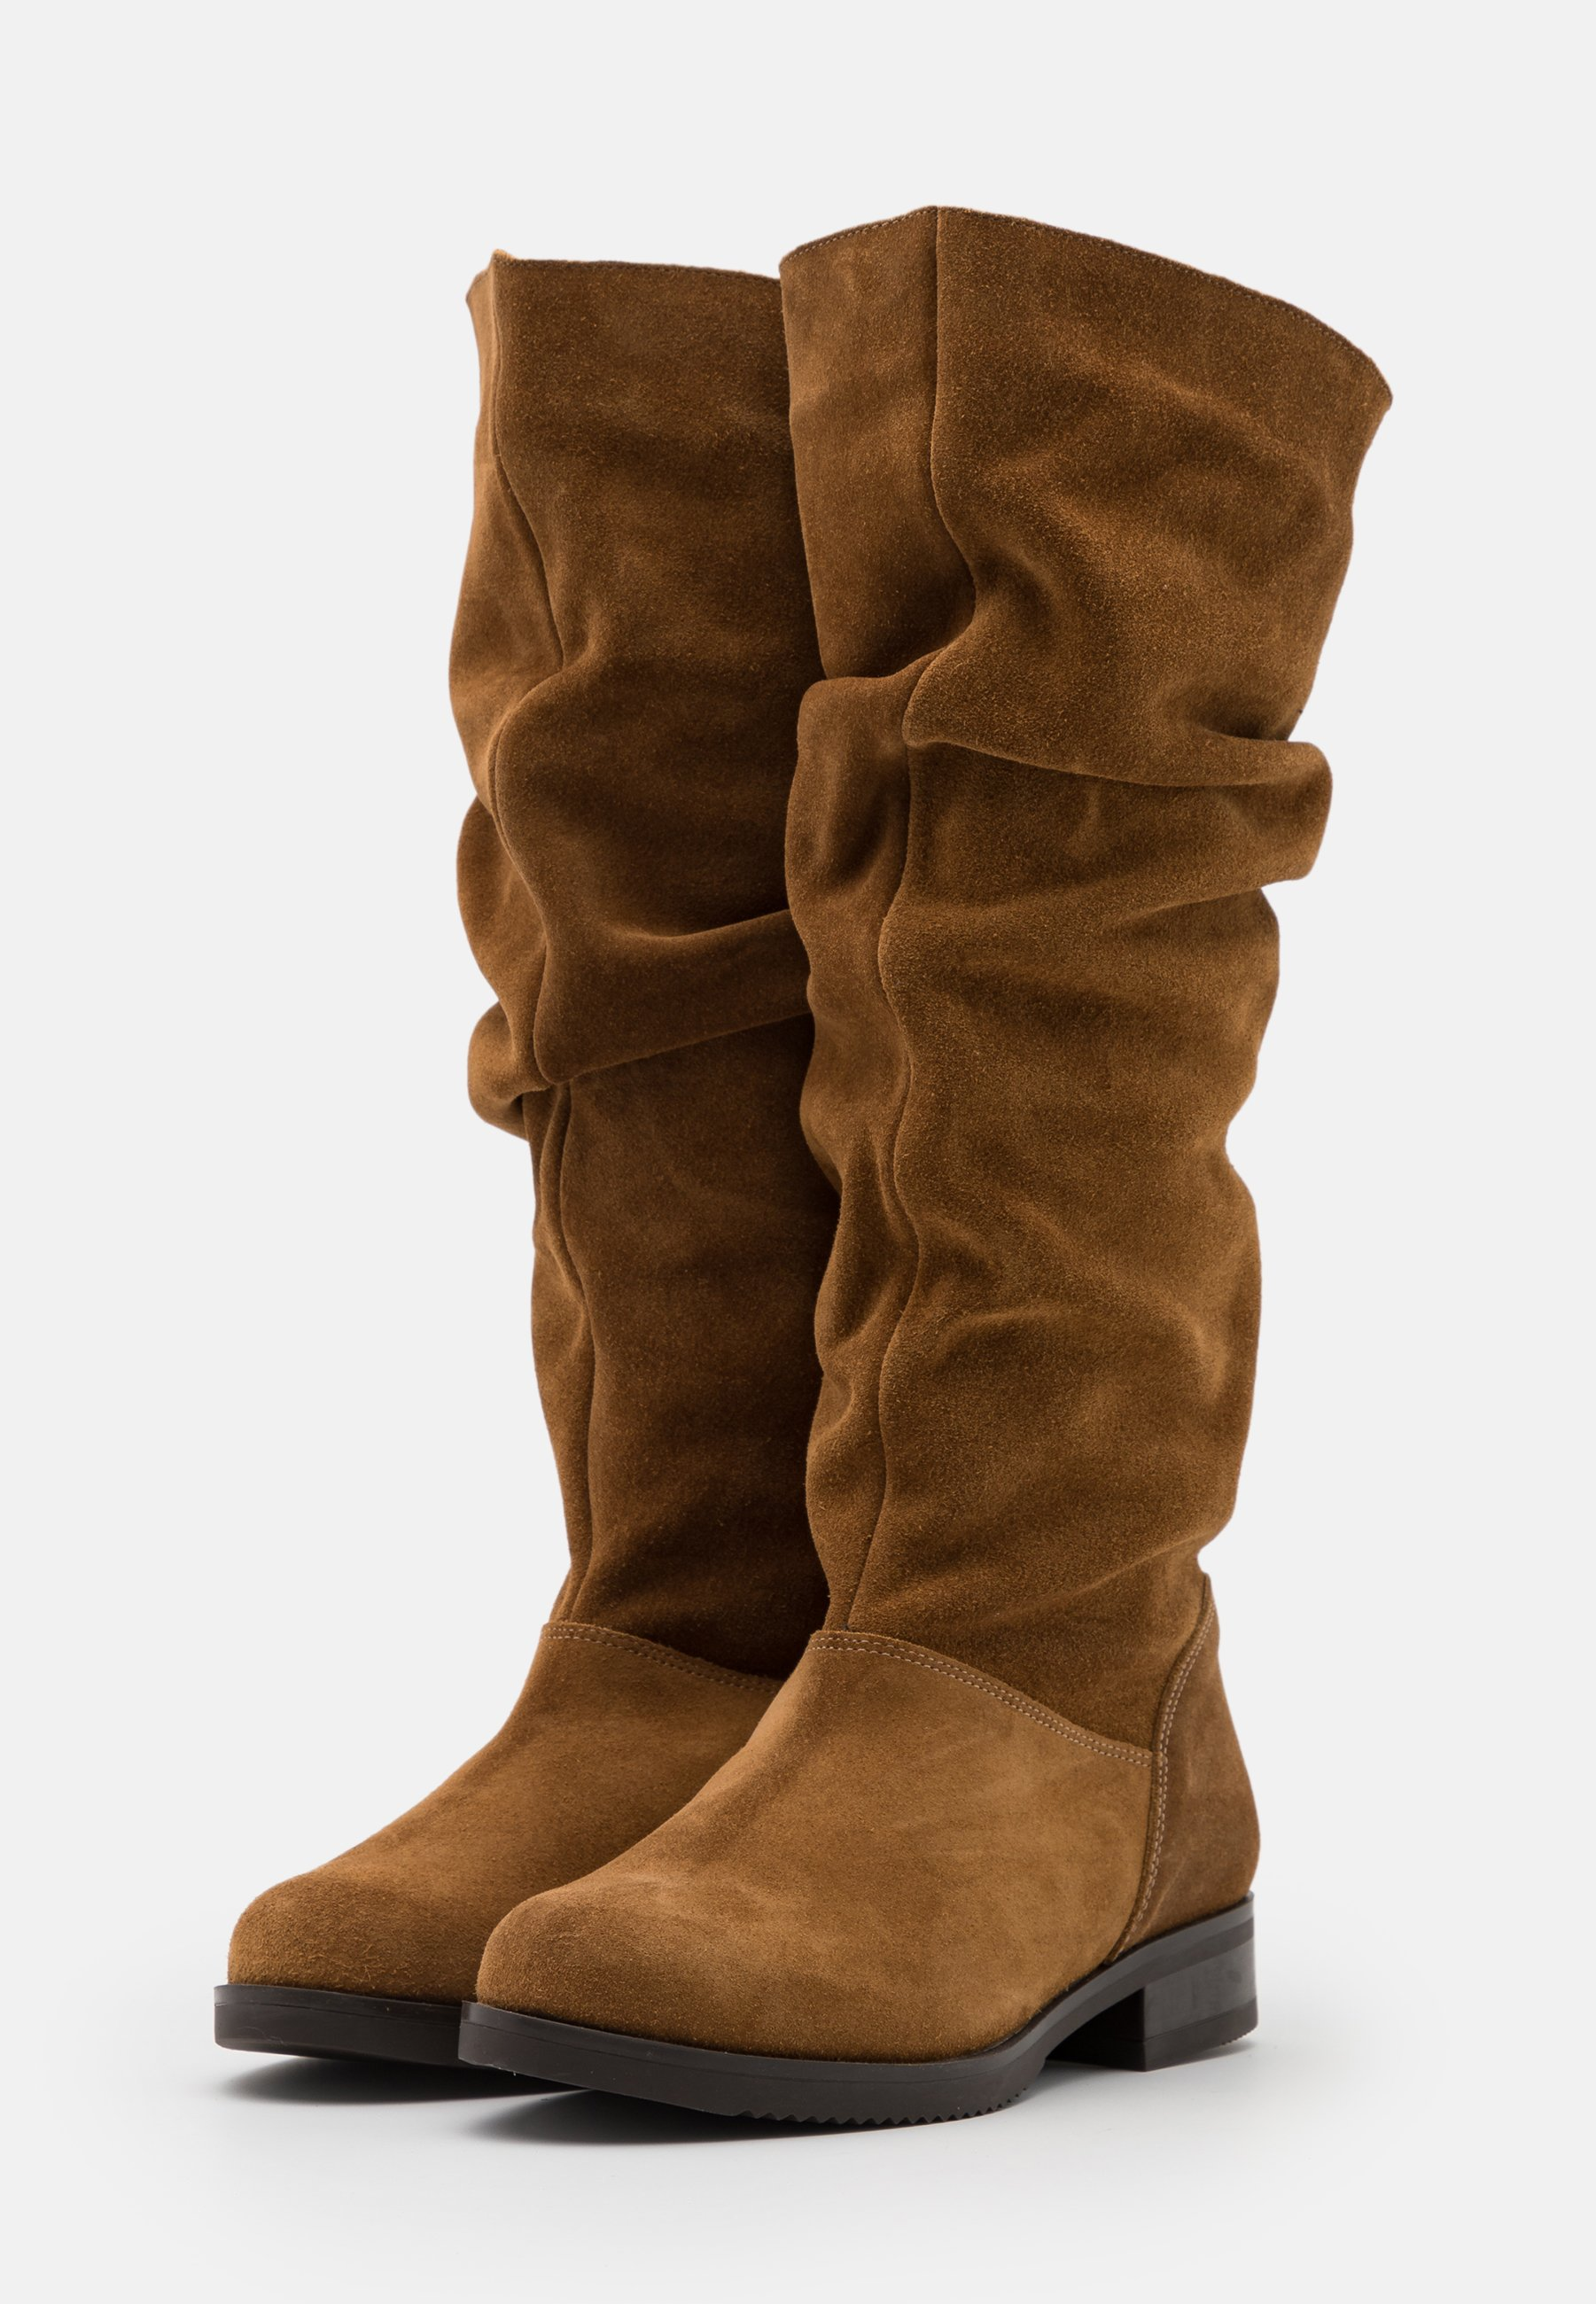 Clean And Classic Popular And Cheap Women's Shoes Mis Pepas Boots avellada rwlg3YmW9 W3FtNwROm